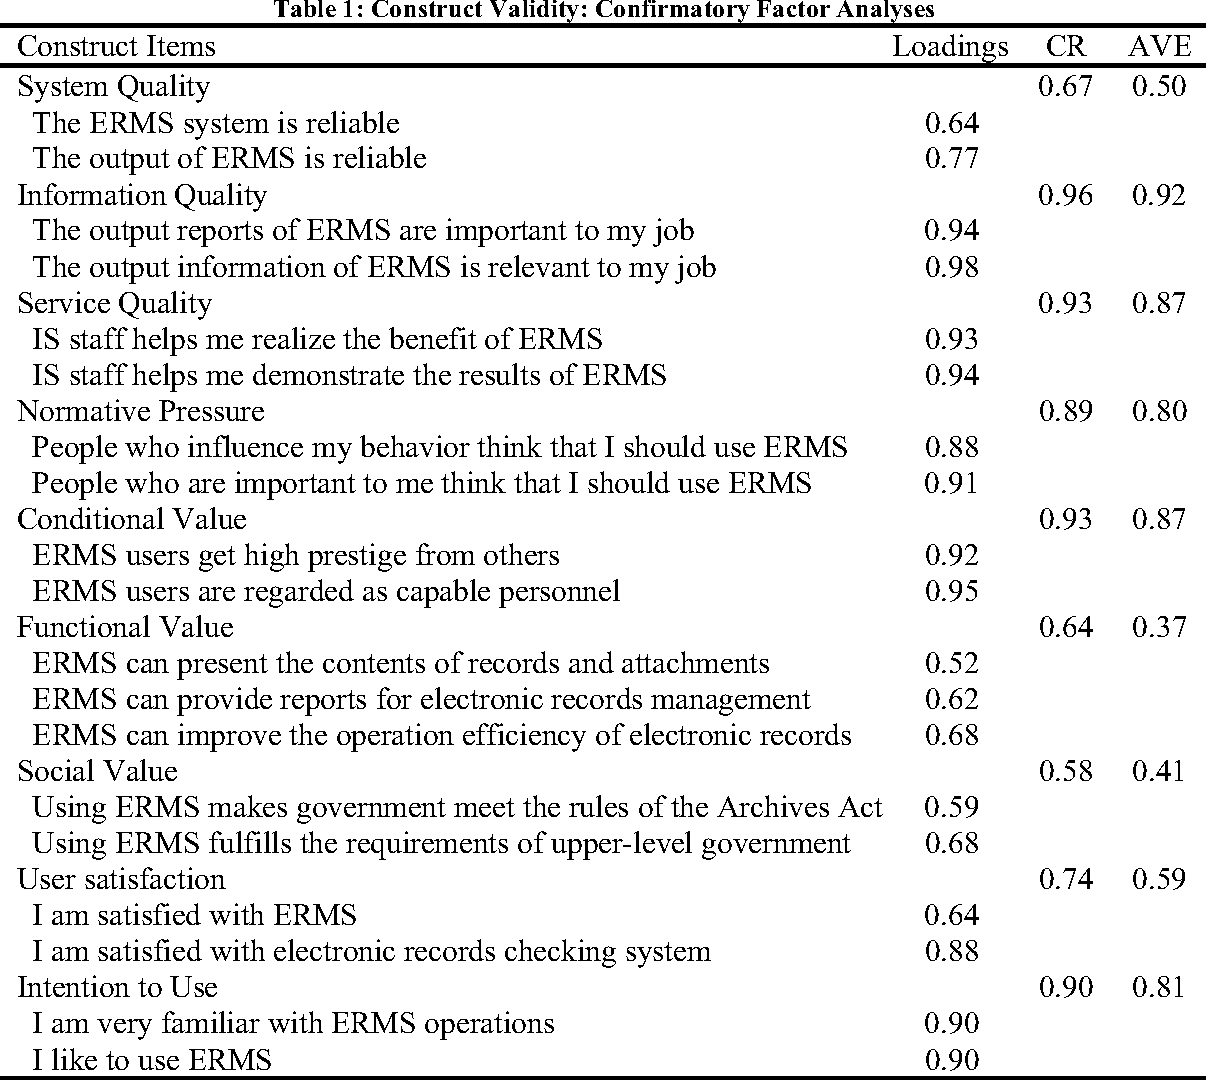 Table 1: Construct Validity: Confirmatory Factor Analyses